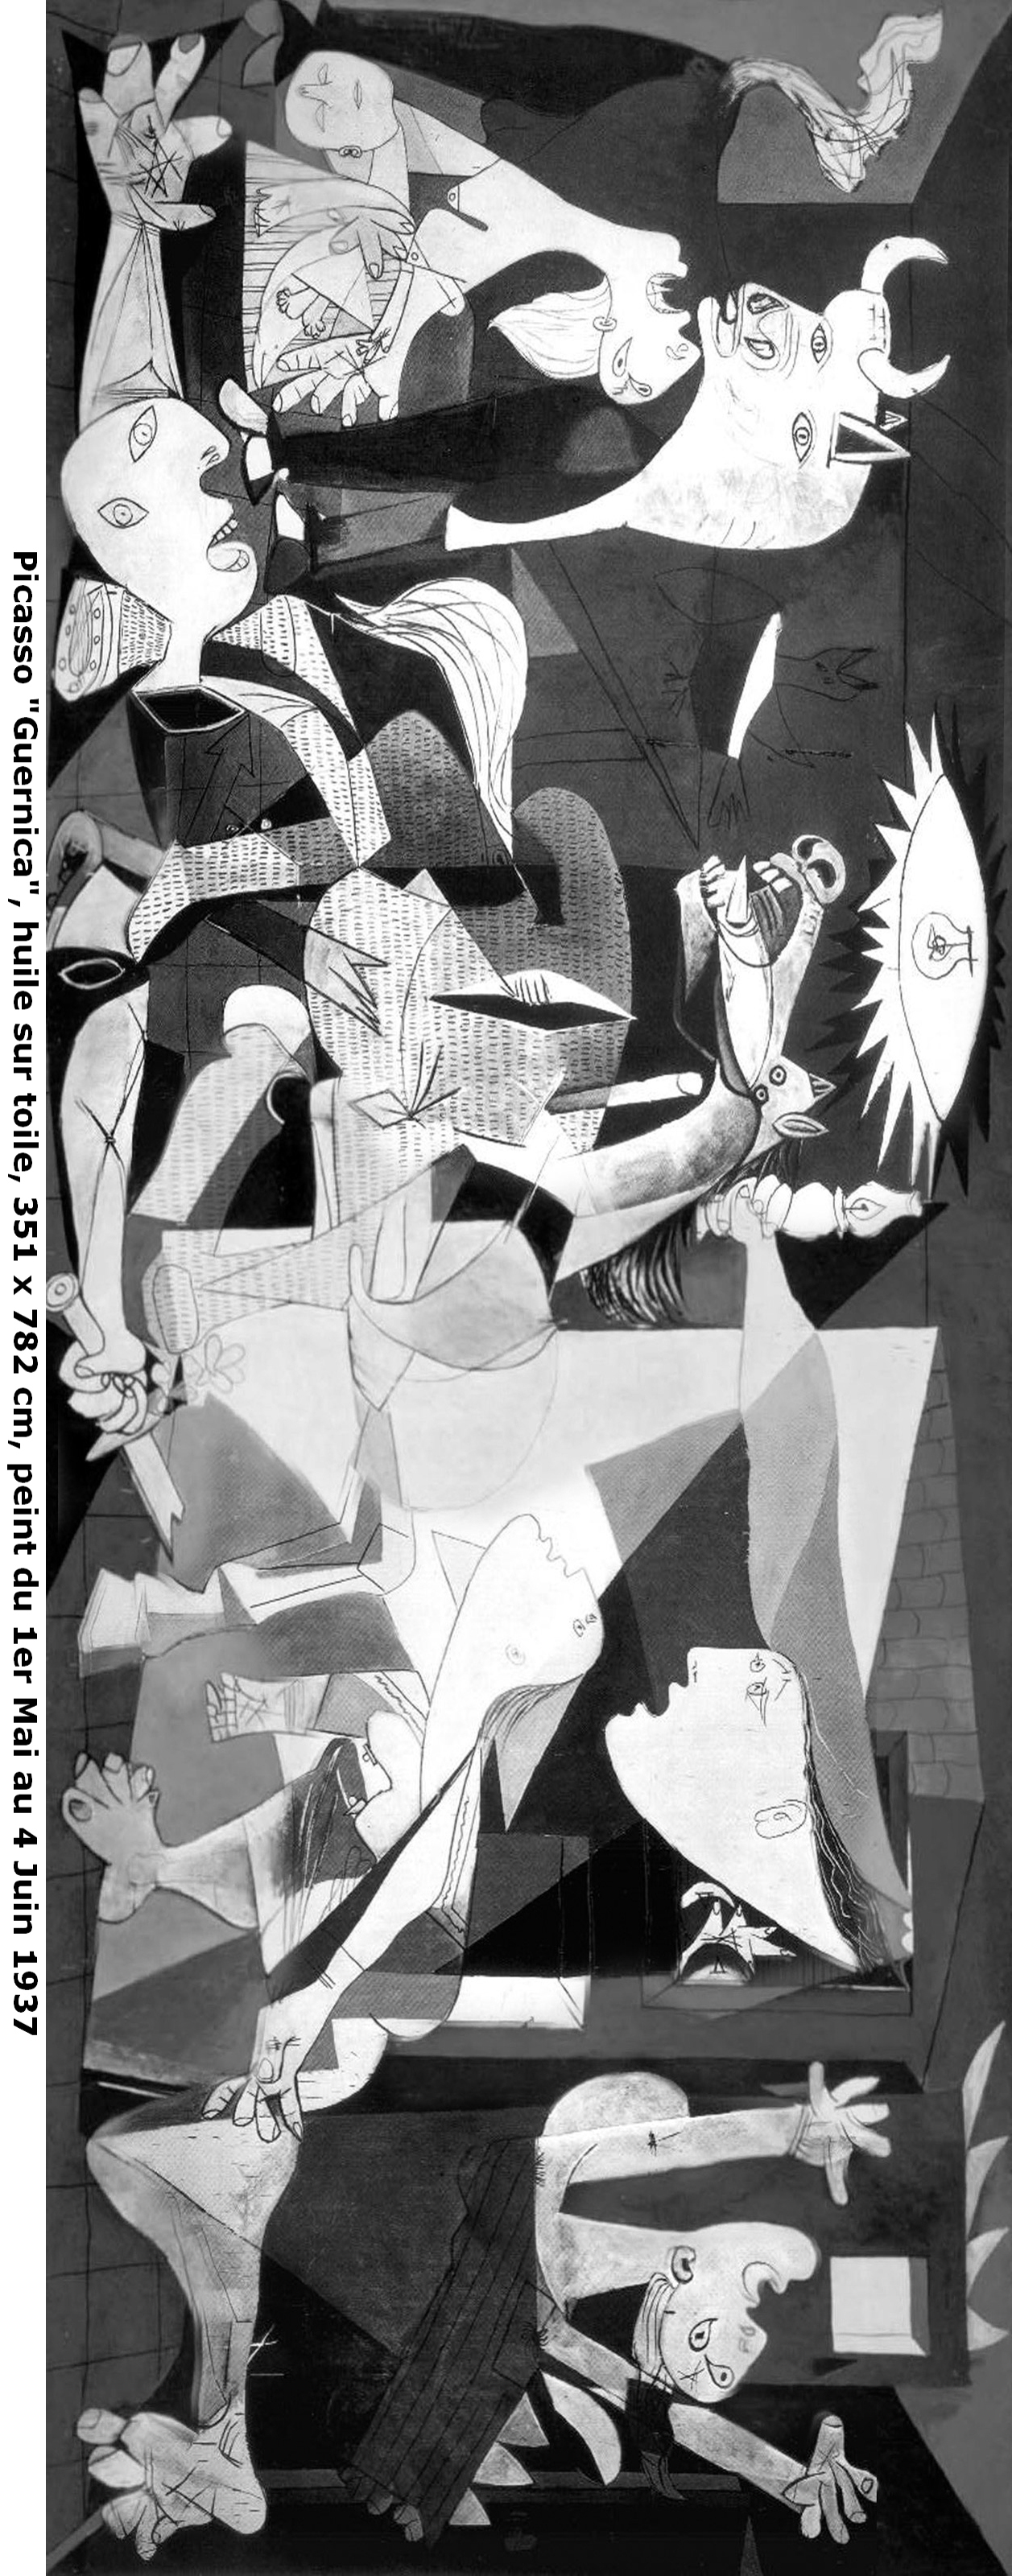 Guernica Meaning: Analysis & Interpretation of Painting by Pablo Picasso